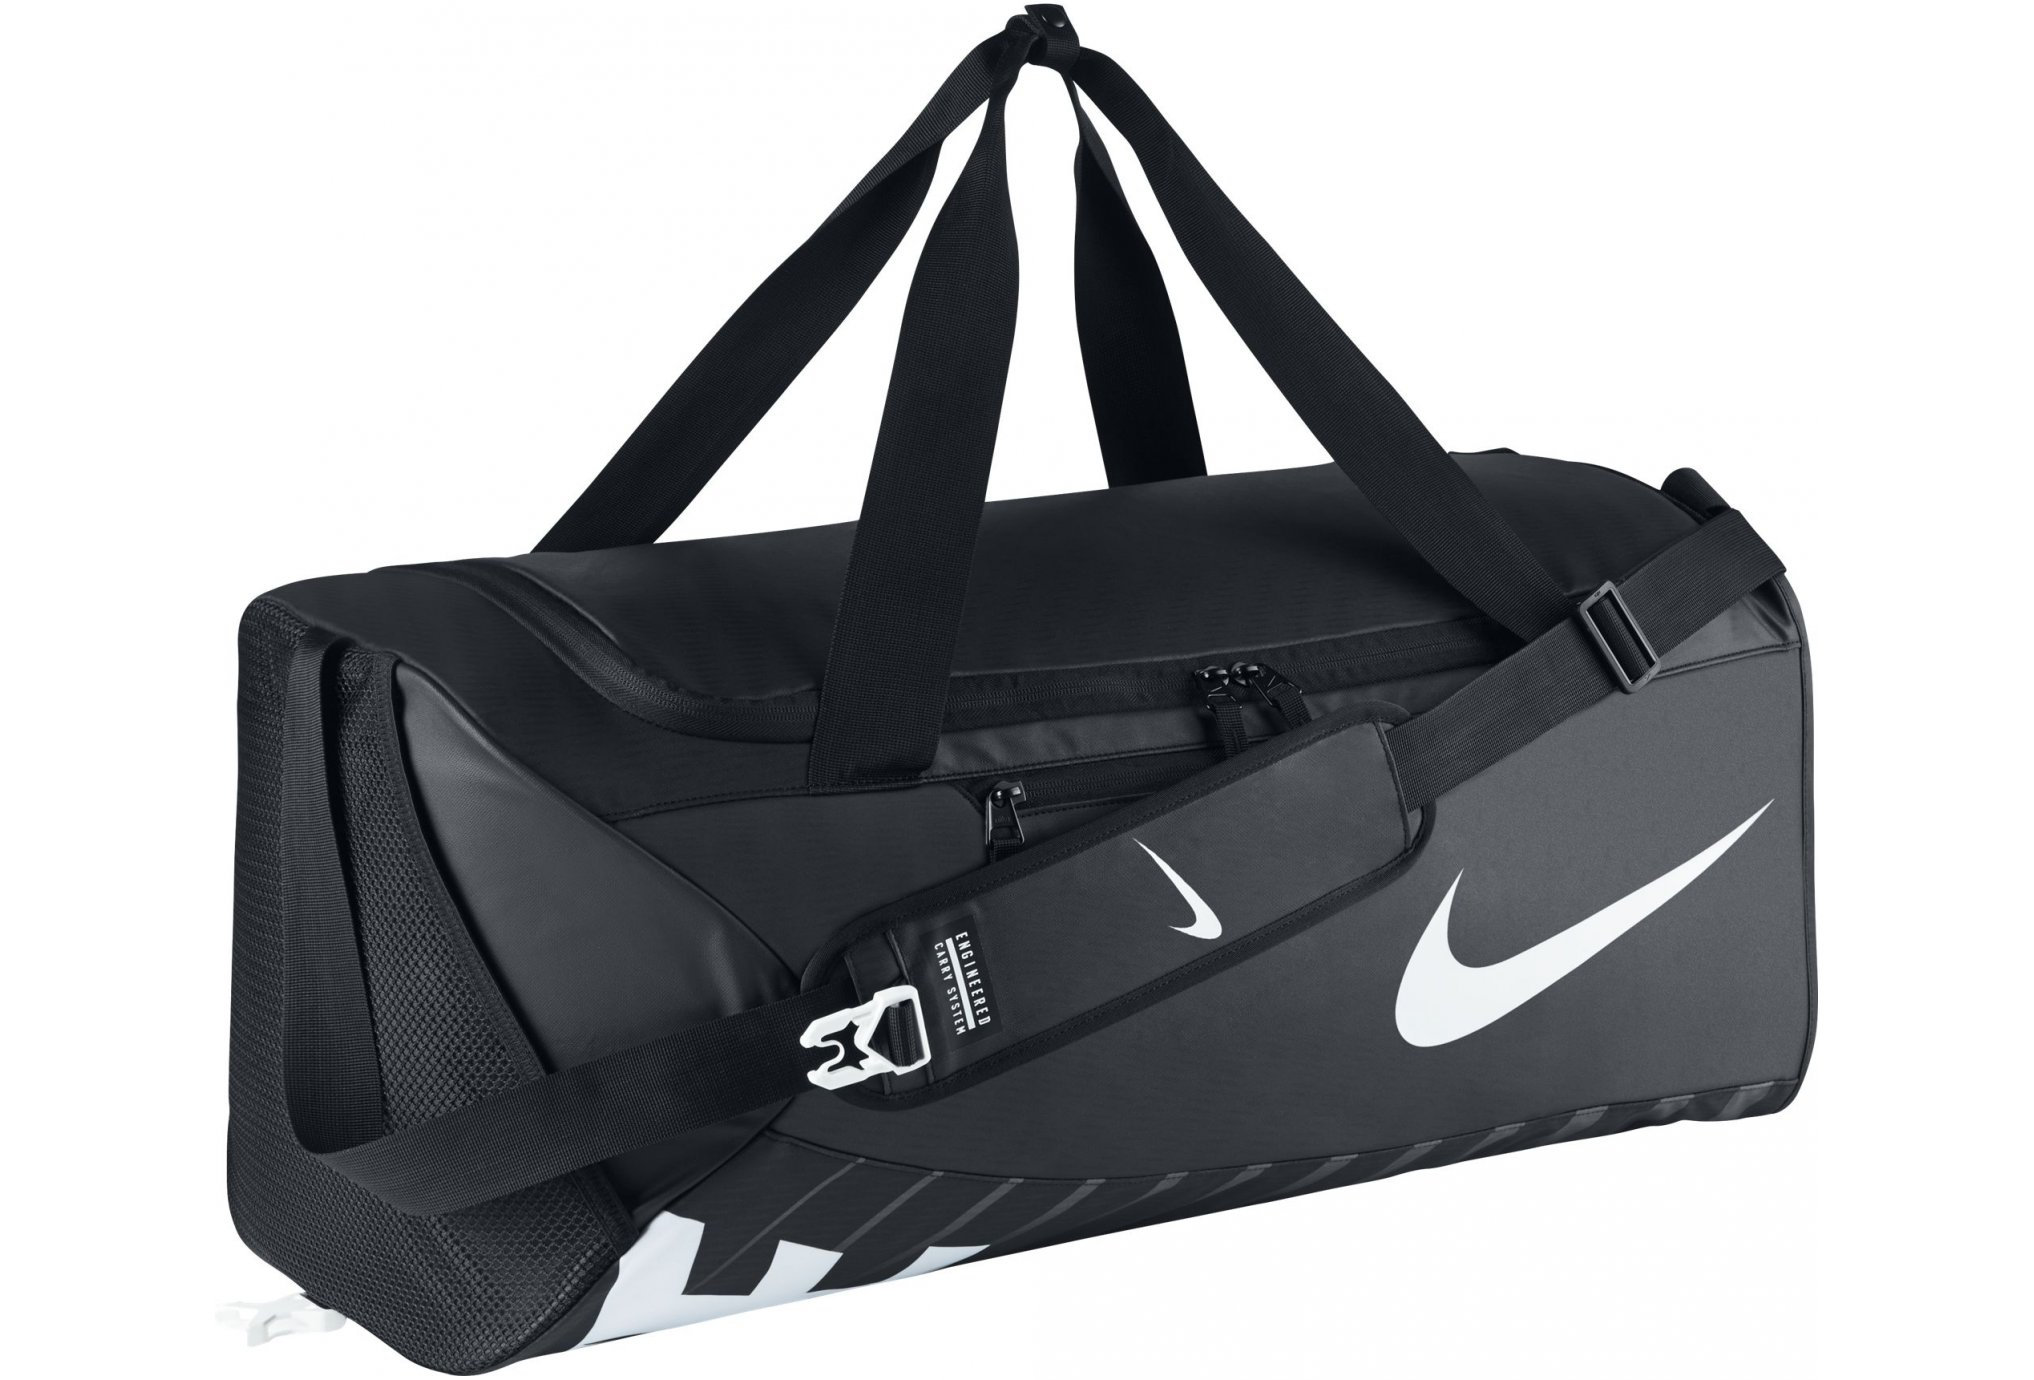 Nike Sac Alpha Adapt Cross Body - L Sac de sport